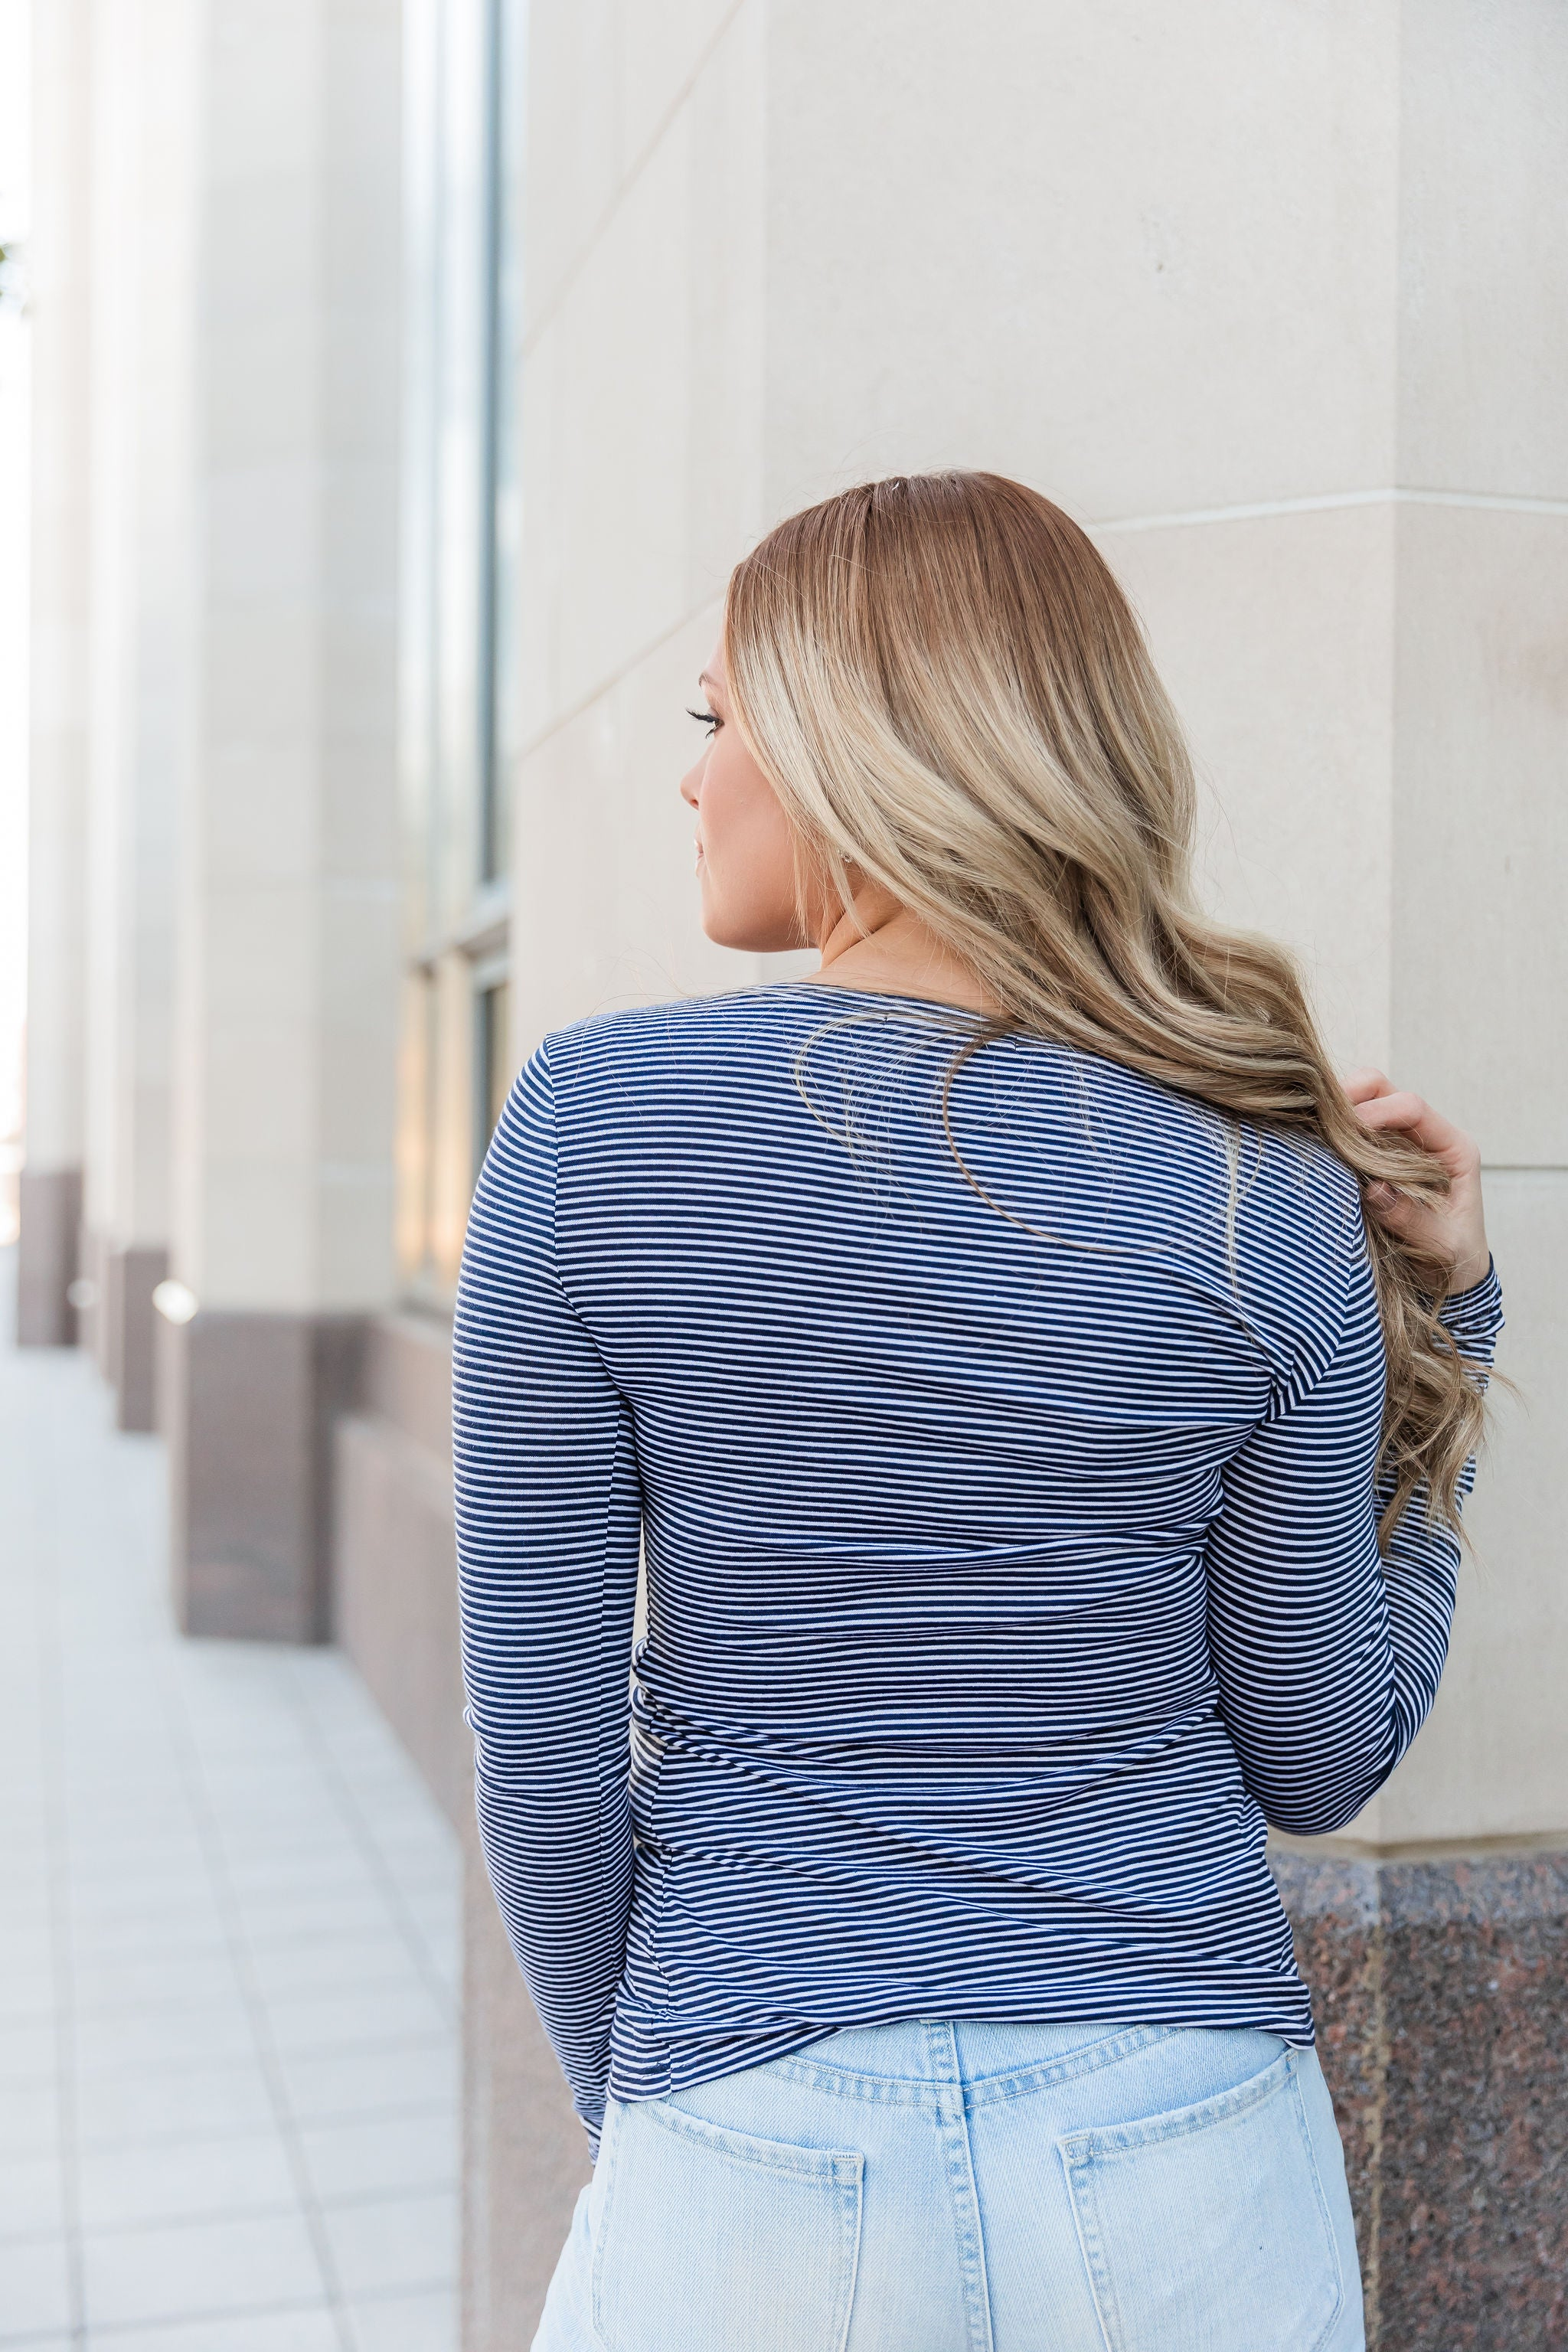 THE BASIC NAVY AND WHITE STRIPE LONG SLEEVE TOP